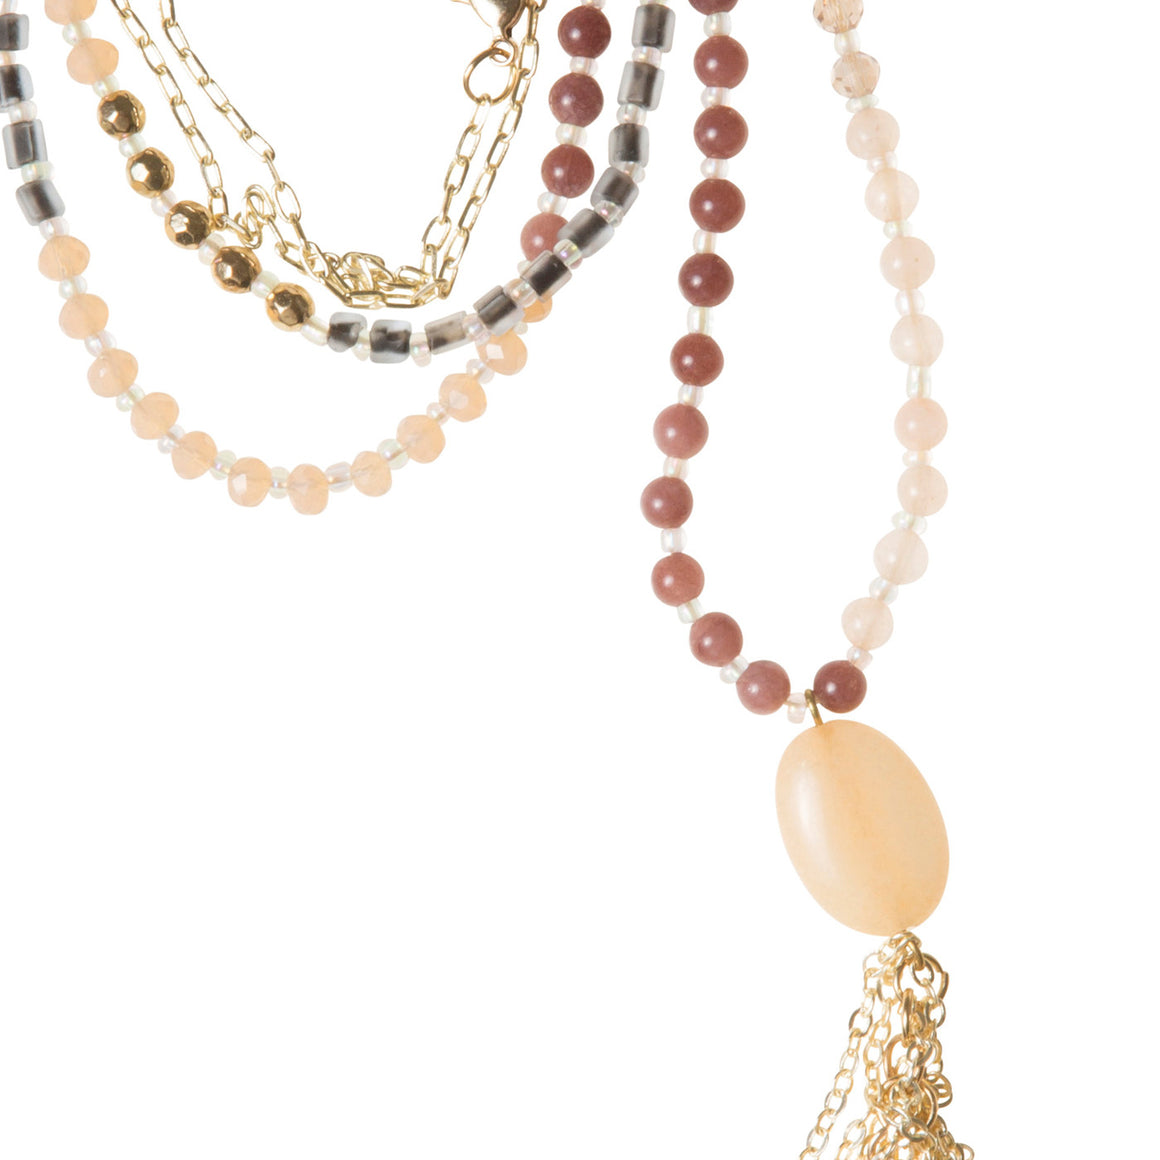 Daily Mala Necklace : mauve/gold